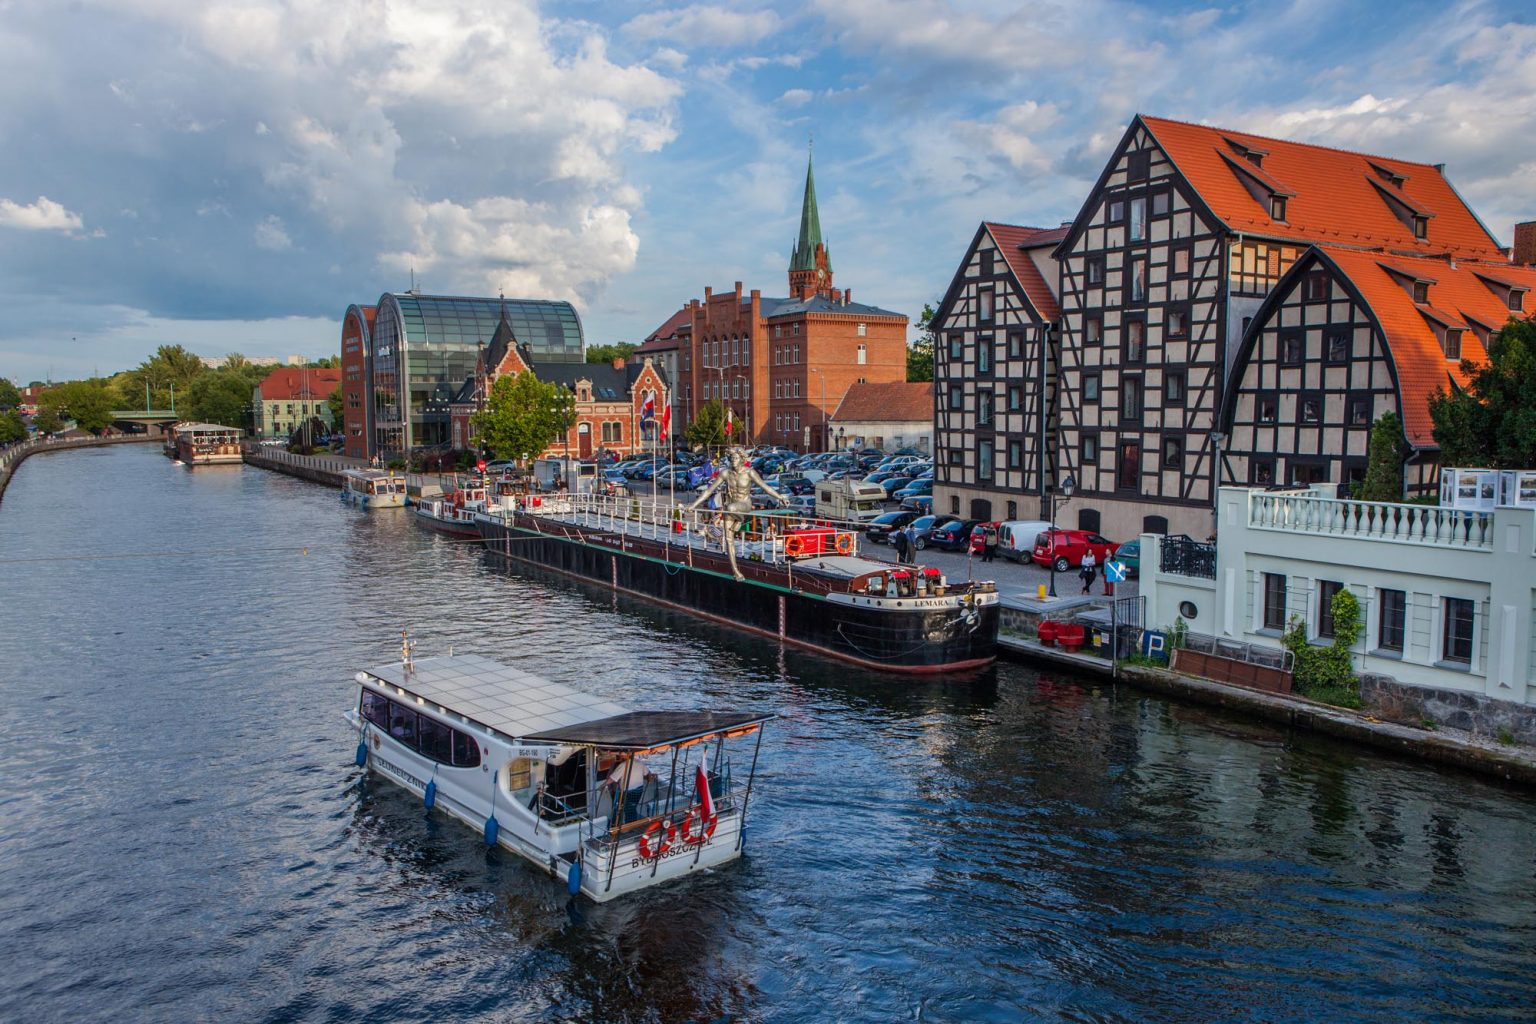 granaries in Bydgoszcz with barge and watertram